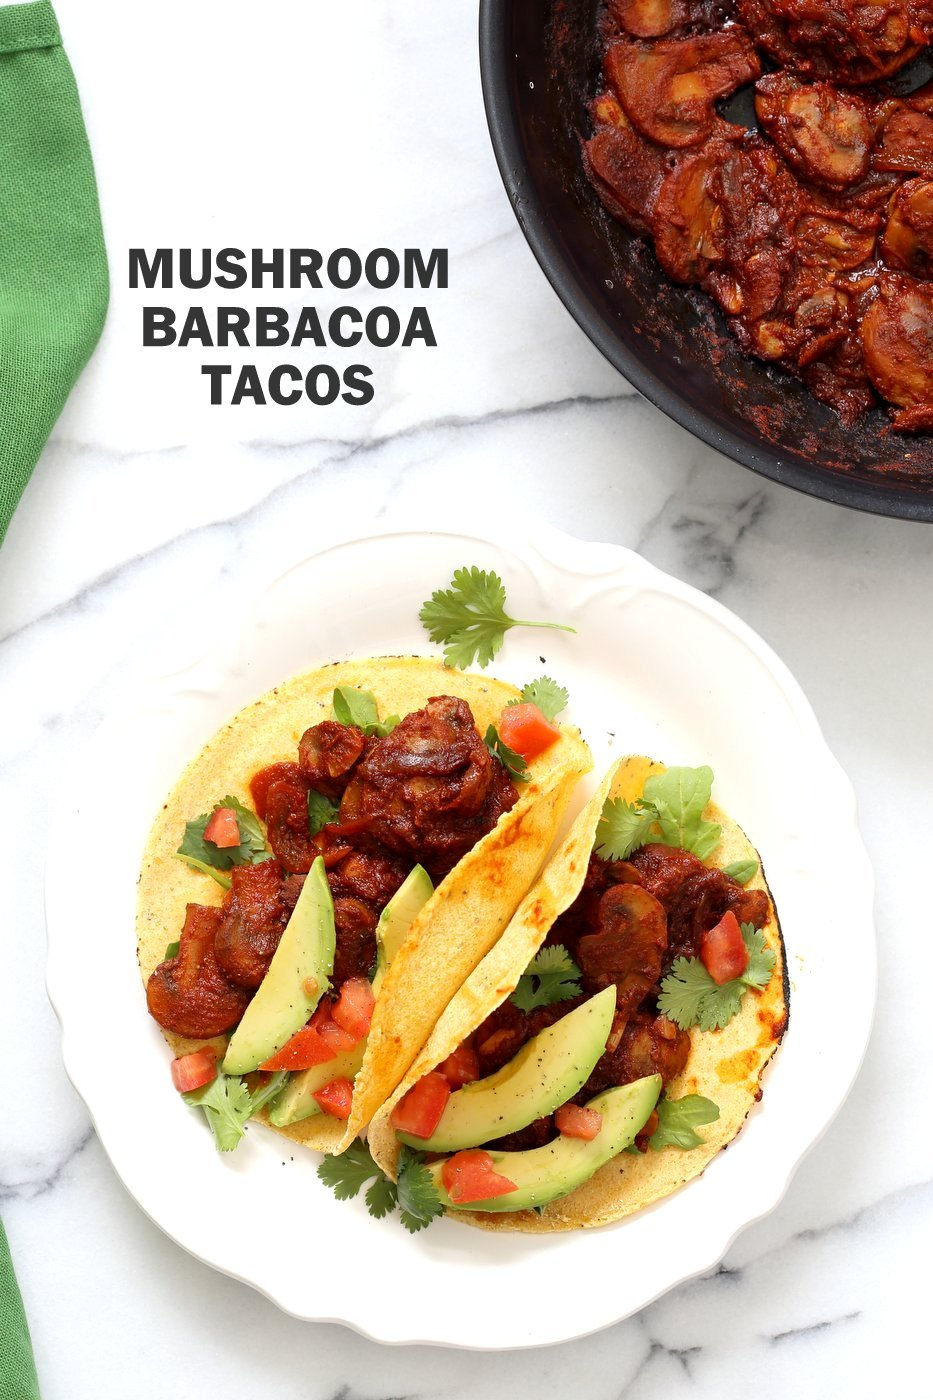 Vegan Barbacoa Mushroom Tacos . These saucy Barbacoa Tacos are super easy and versatile. Use the from scratch chile sauce with beans, lentils or other shredded vegetables for variation. 1 Pot Vegan Barbacoa Recipe. #Glutenfree #Nutfree #soyfree #Recipe #veganricha | VeganRicha.com